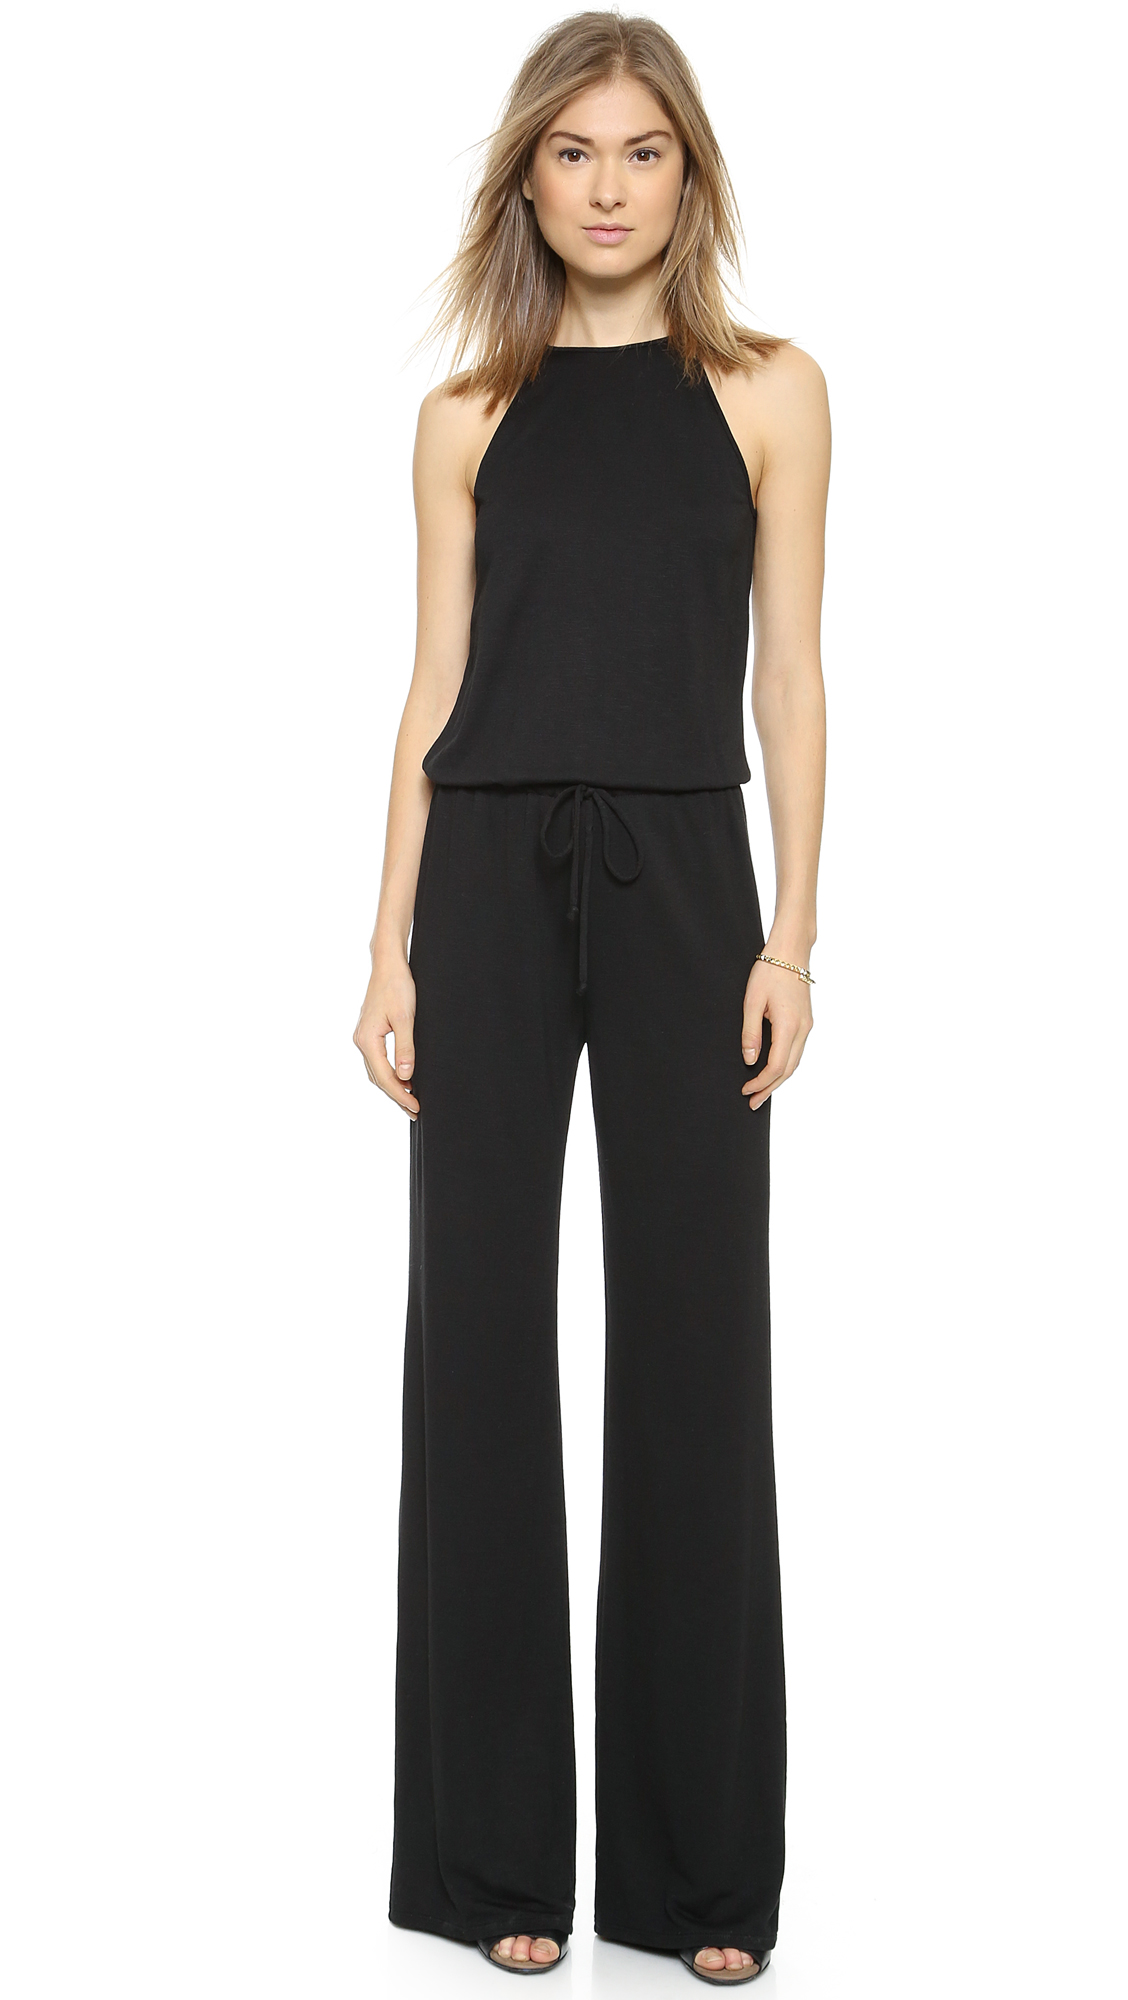 Lanston Halter Jumpsuit - Black at Shopbop